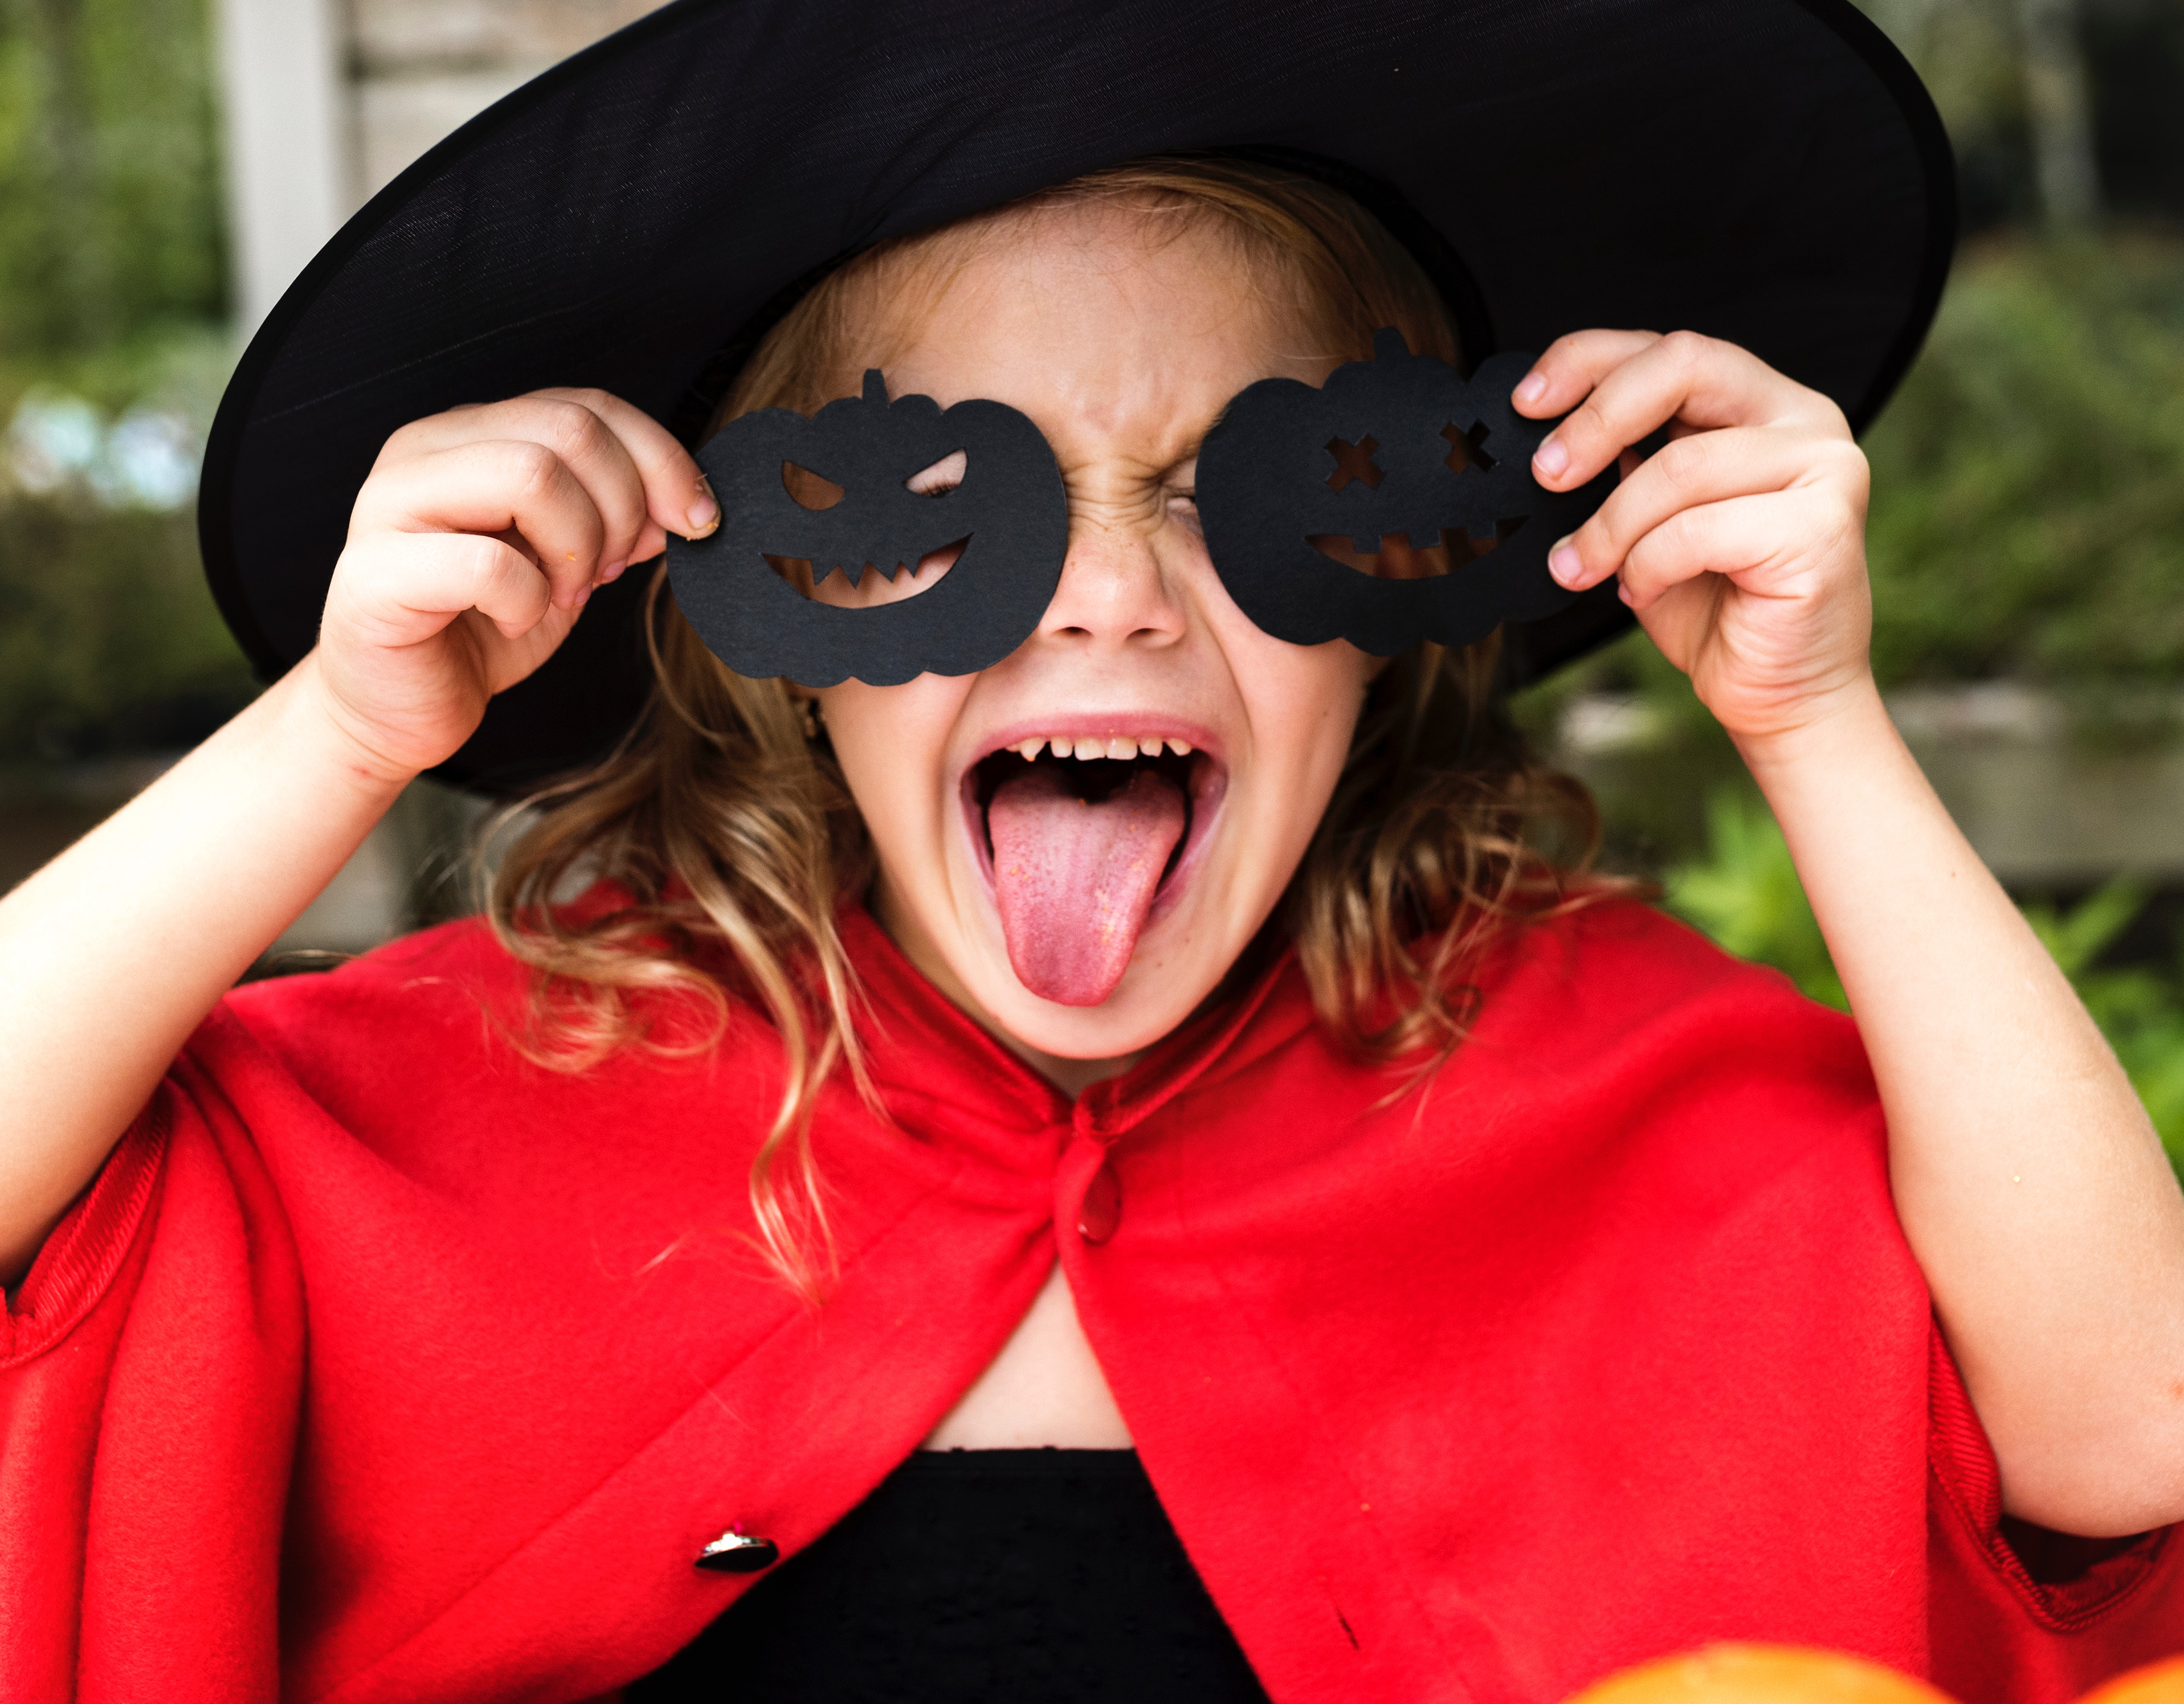 Give your employees some leniency to celebrate Halloween with their kids